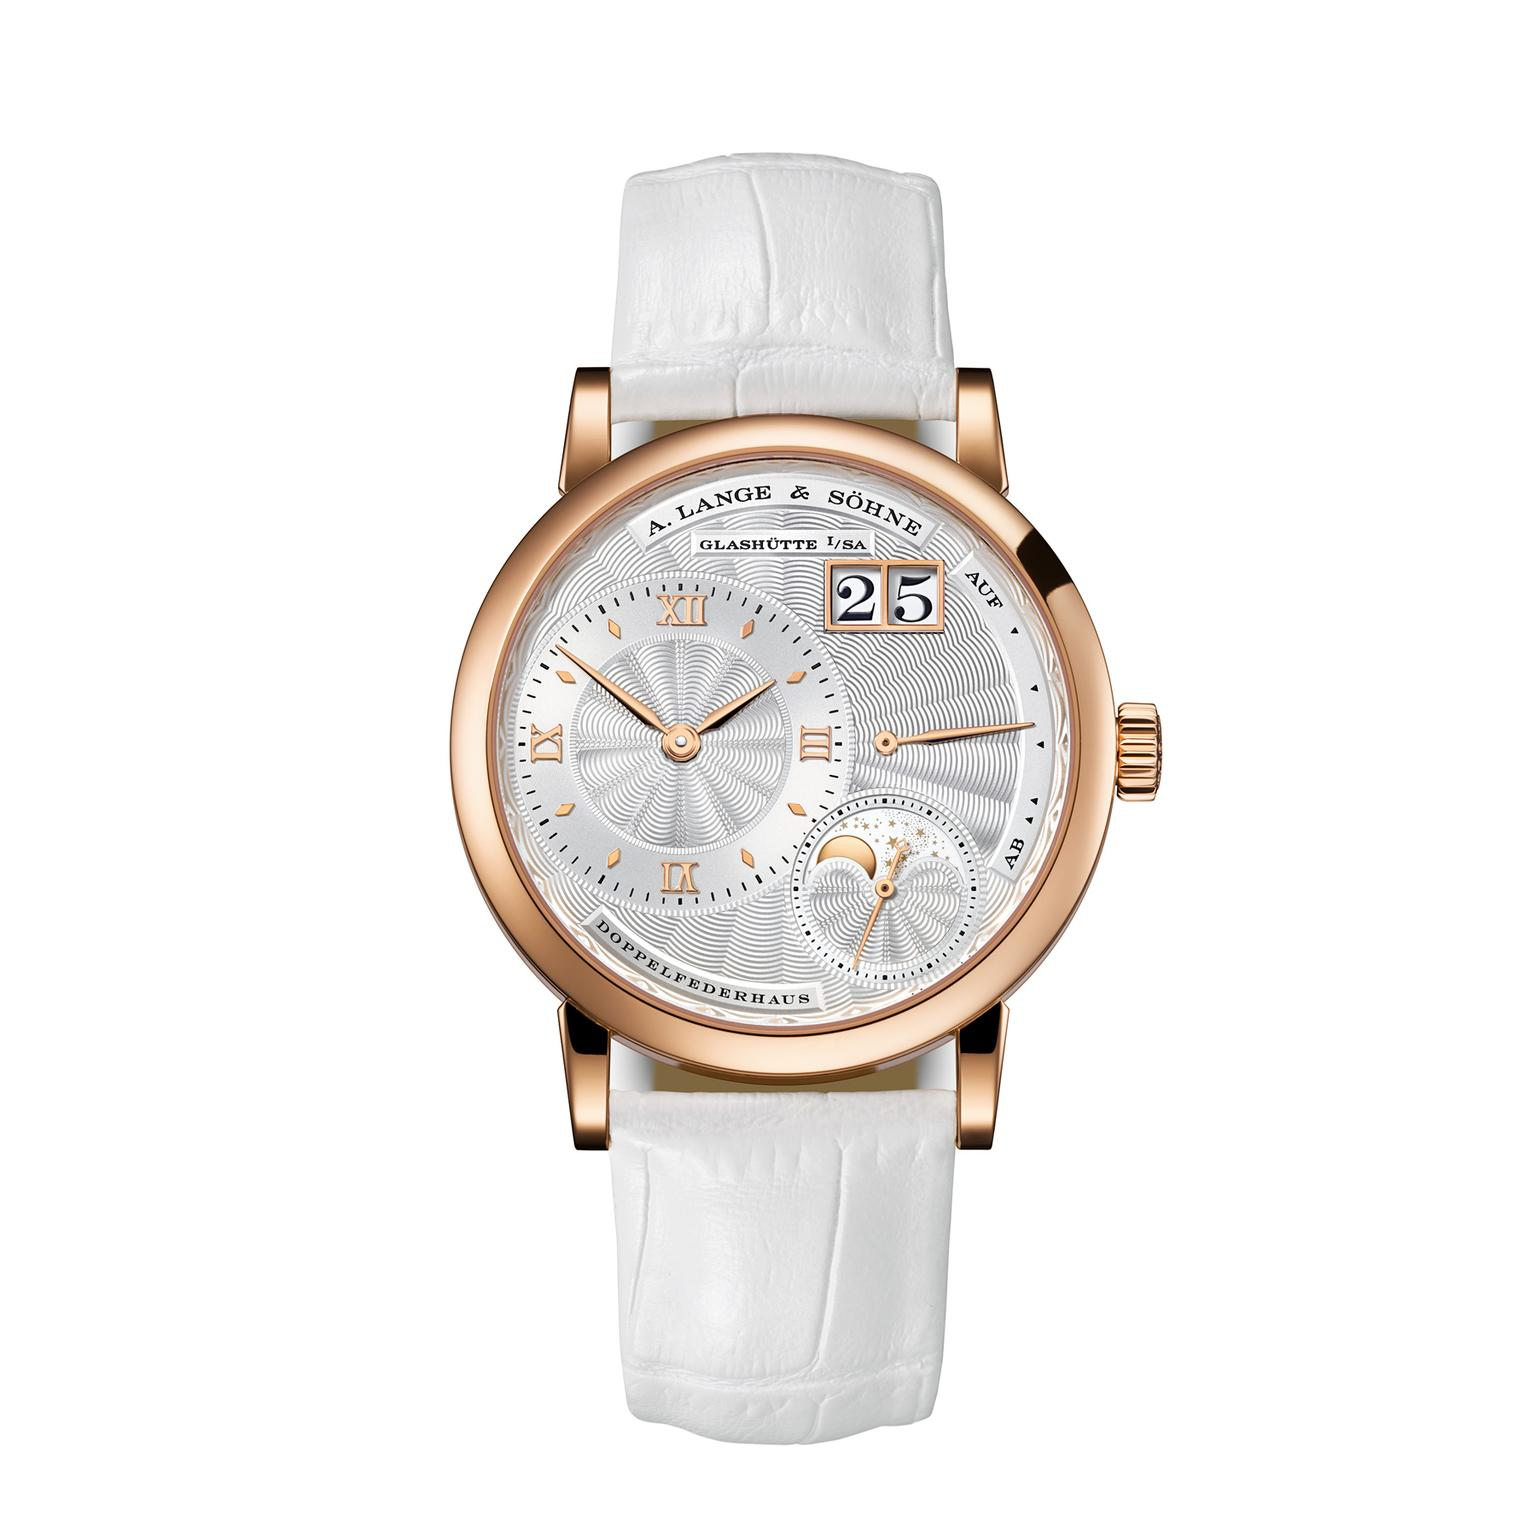 A. Lange & Söhne Little Lange 1 ladies' watch